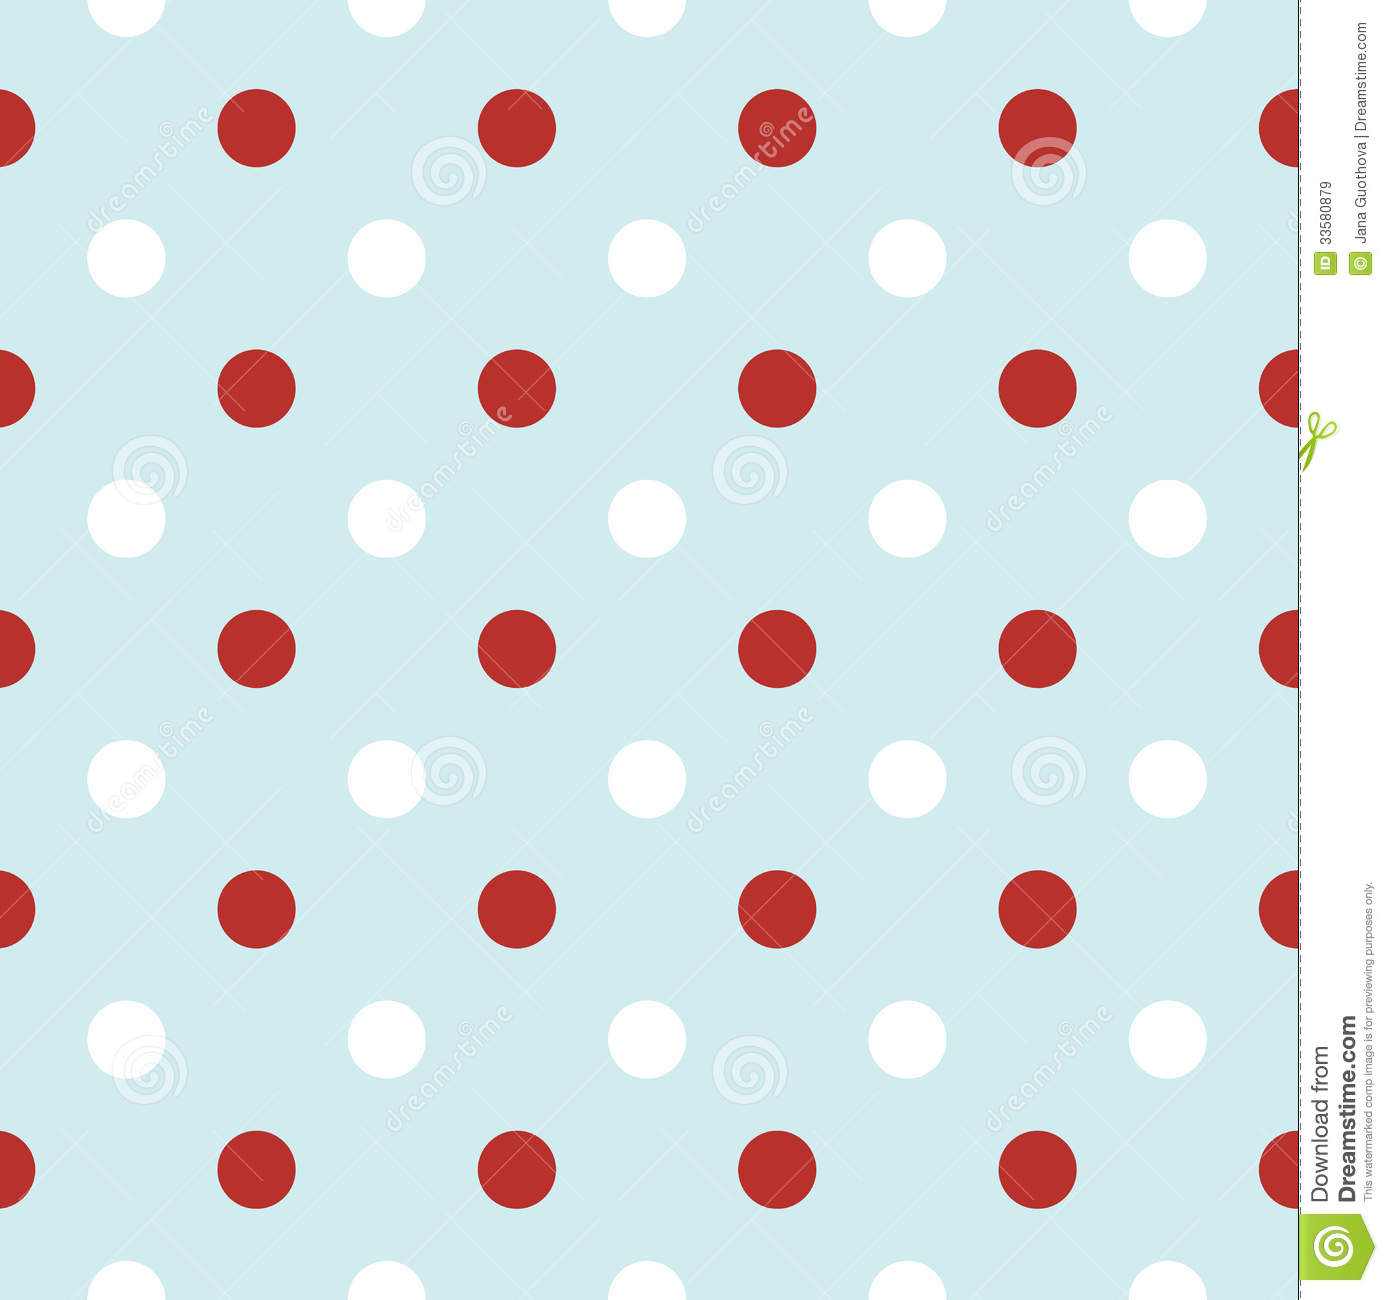 Christmas Retro Background With Polka Dots In Red Royalty Free ...